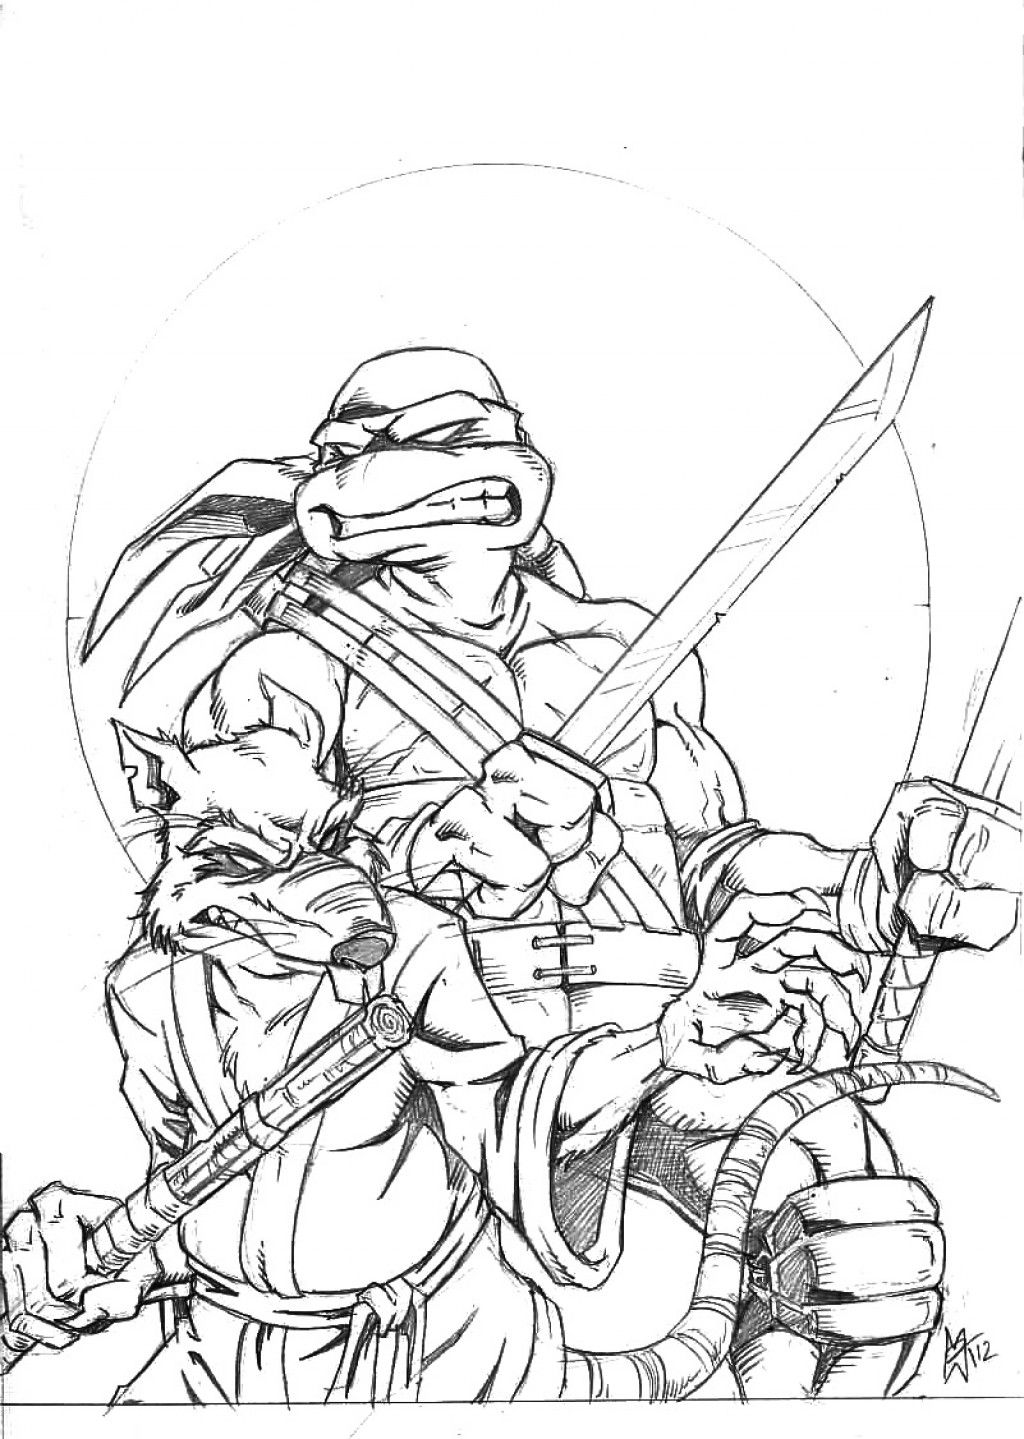 Teenage Mutant Ninja Turtles Printable Coloring Pages | Pinterest ...